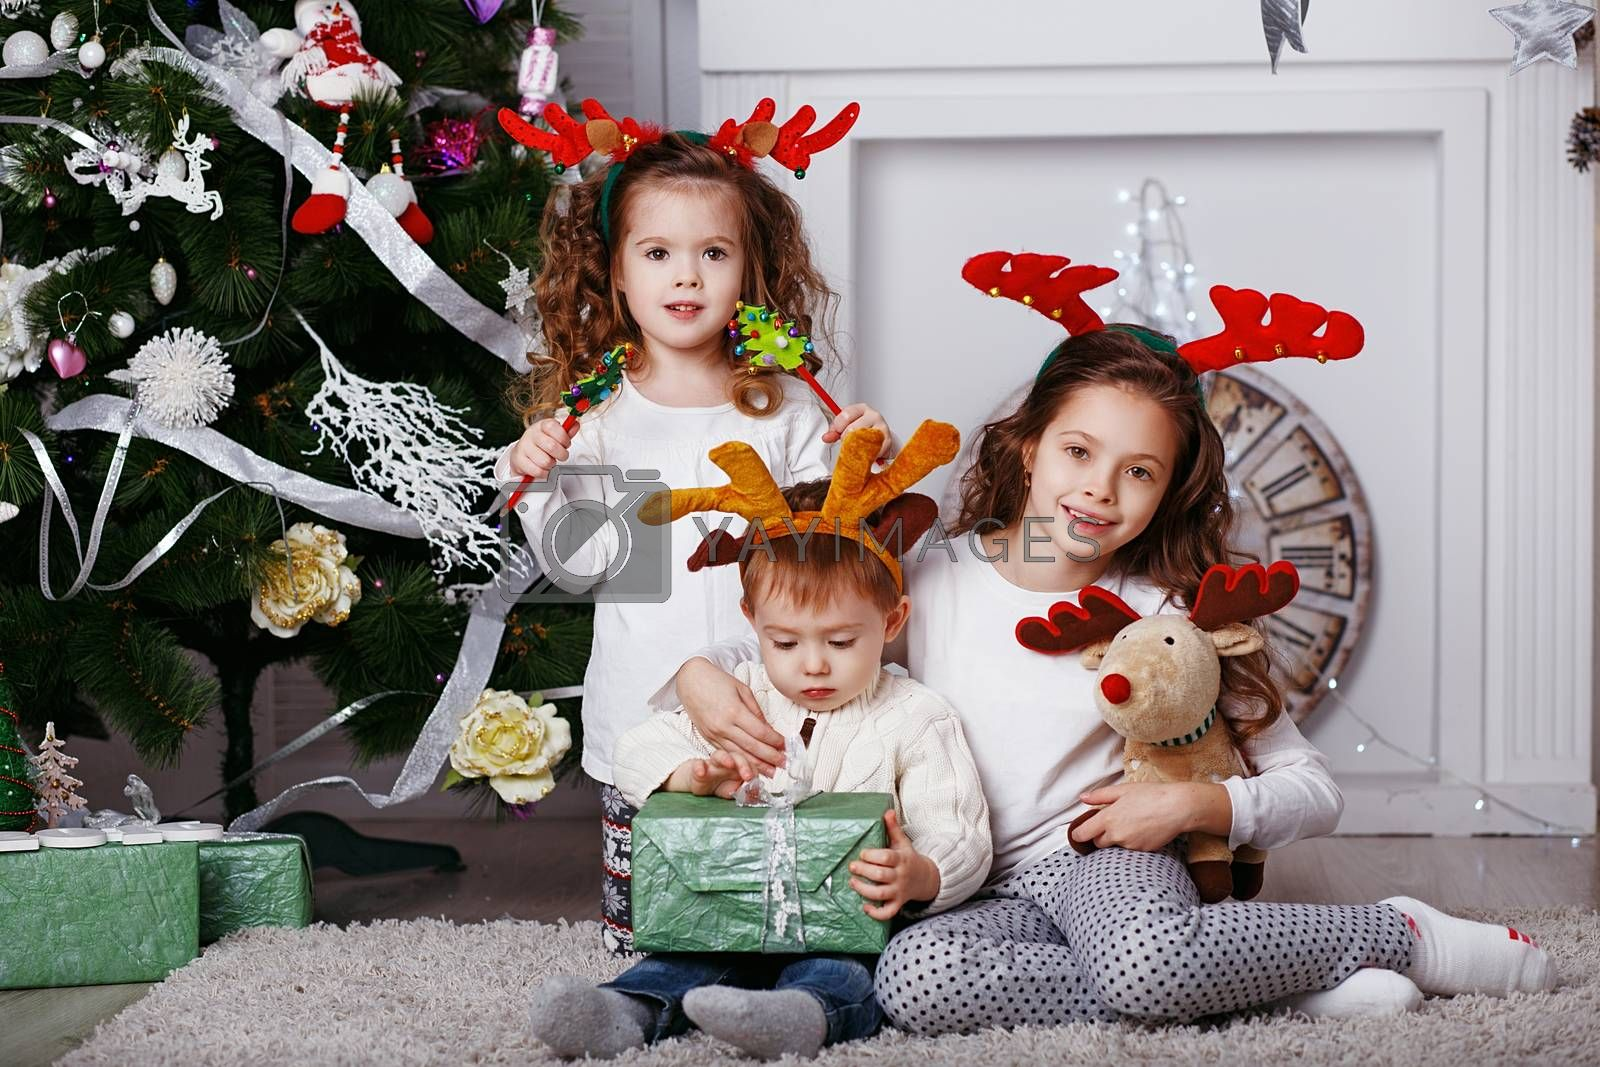 Little children in reindeer antlers In anticipation of new year and Christmas. Three little siblings opening christmas gifts. Kids in comfortable home clothes sitting on floor over Christmas tree